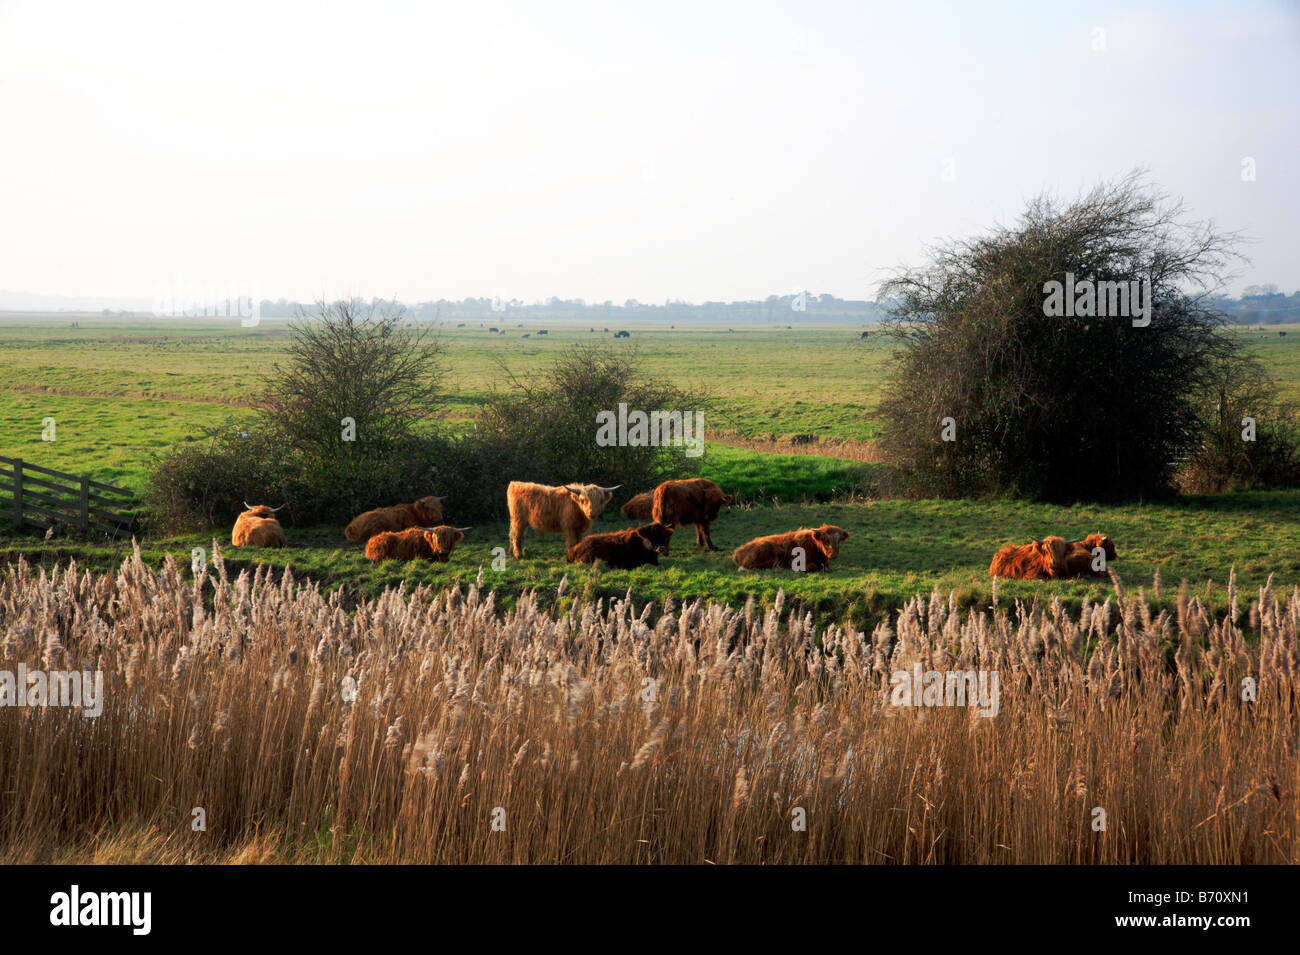 Highland cattle resting in a corner of Reedham Marshes on the Norfolk Broads, Uk. - Stock Image